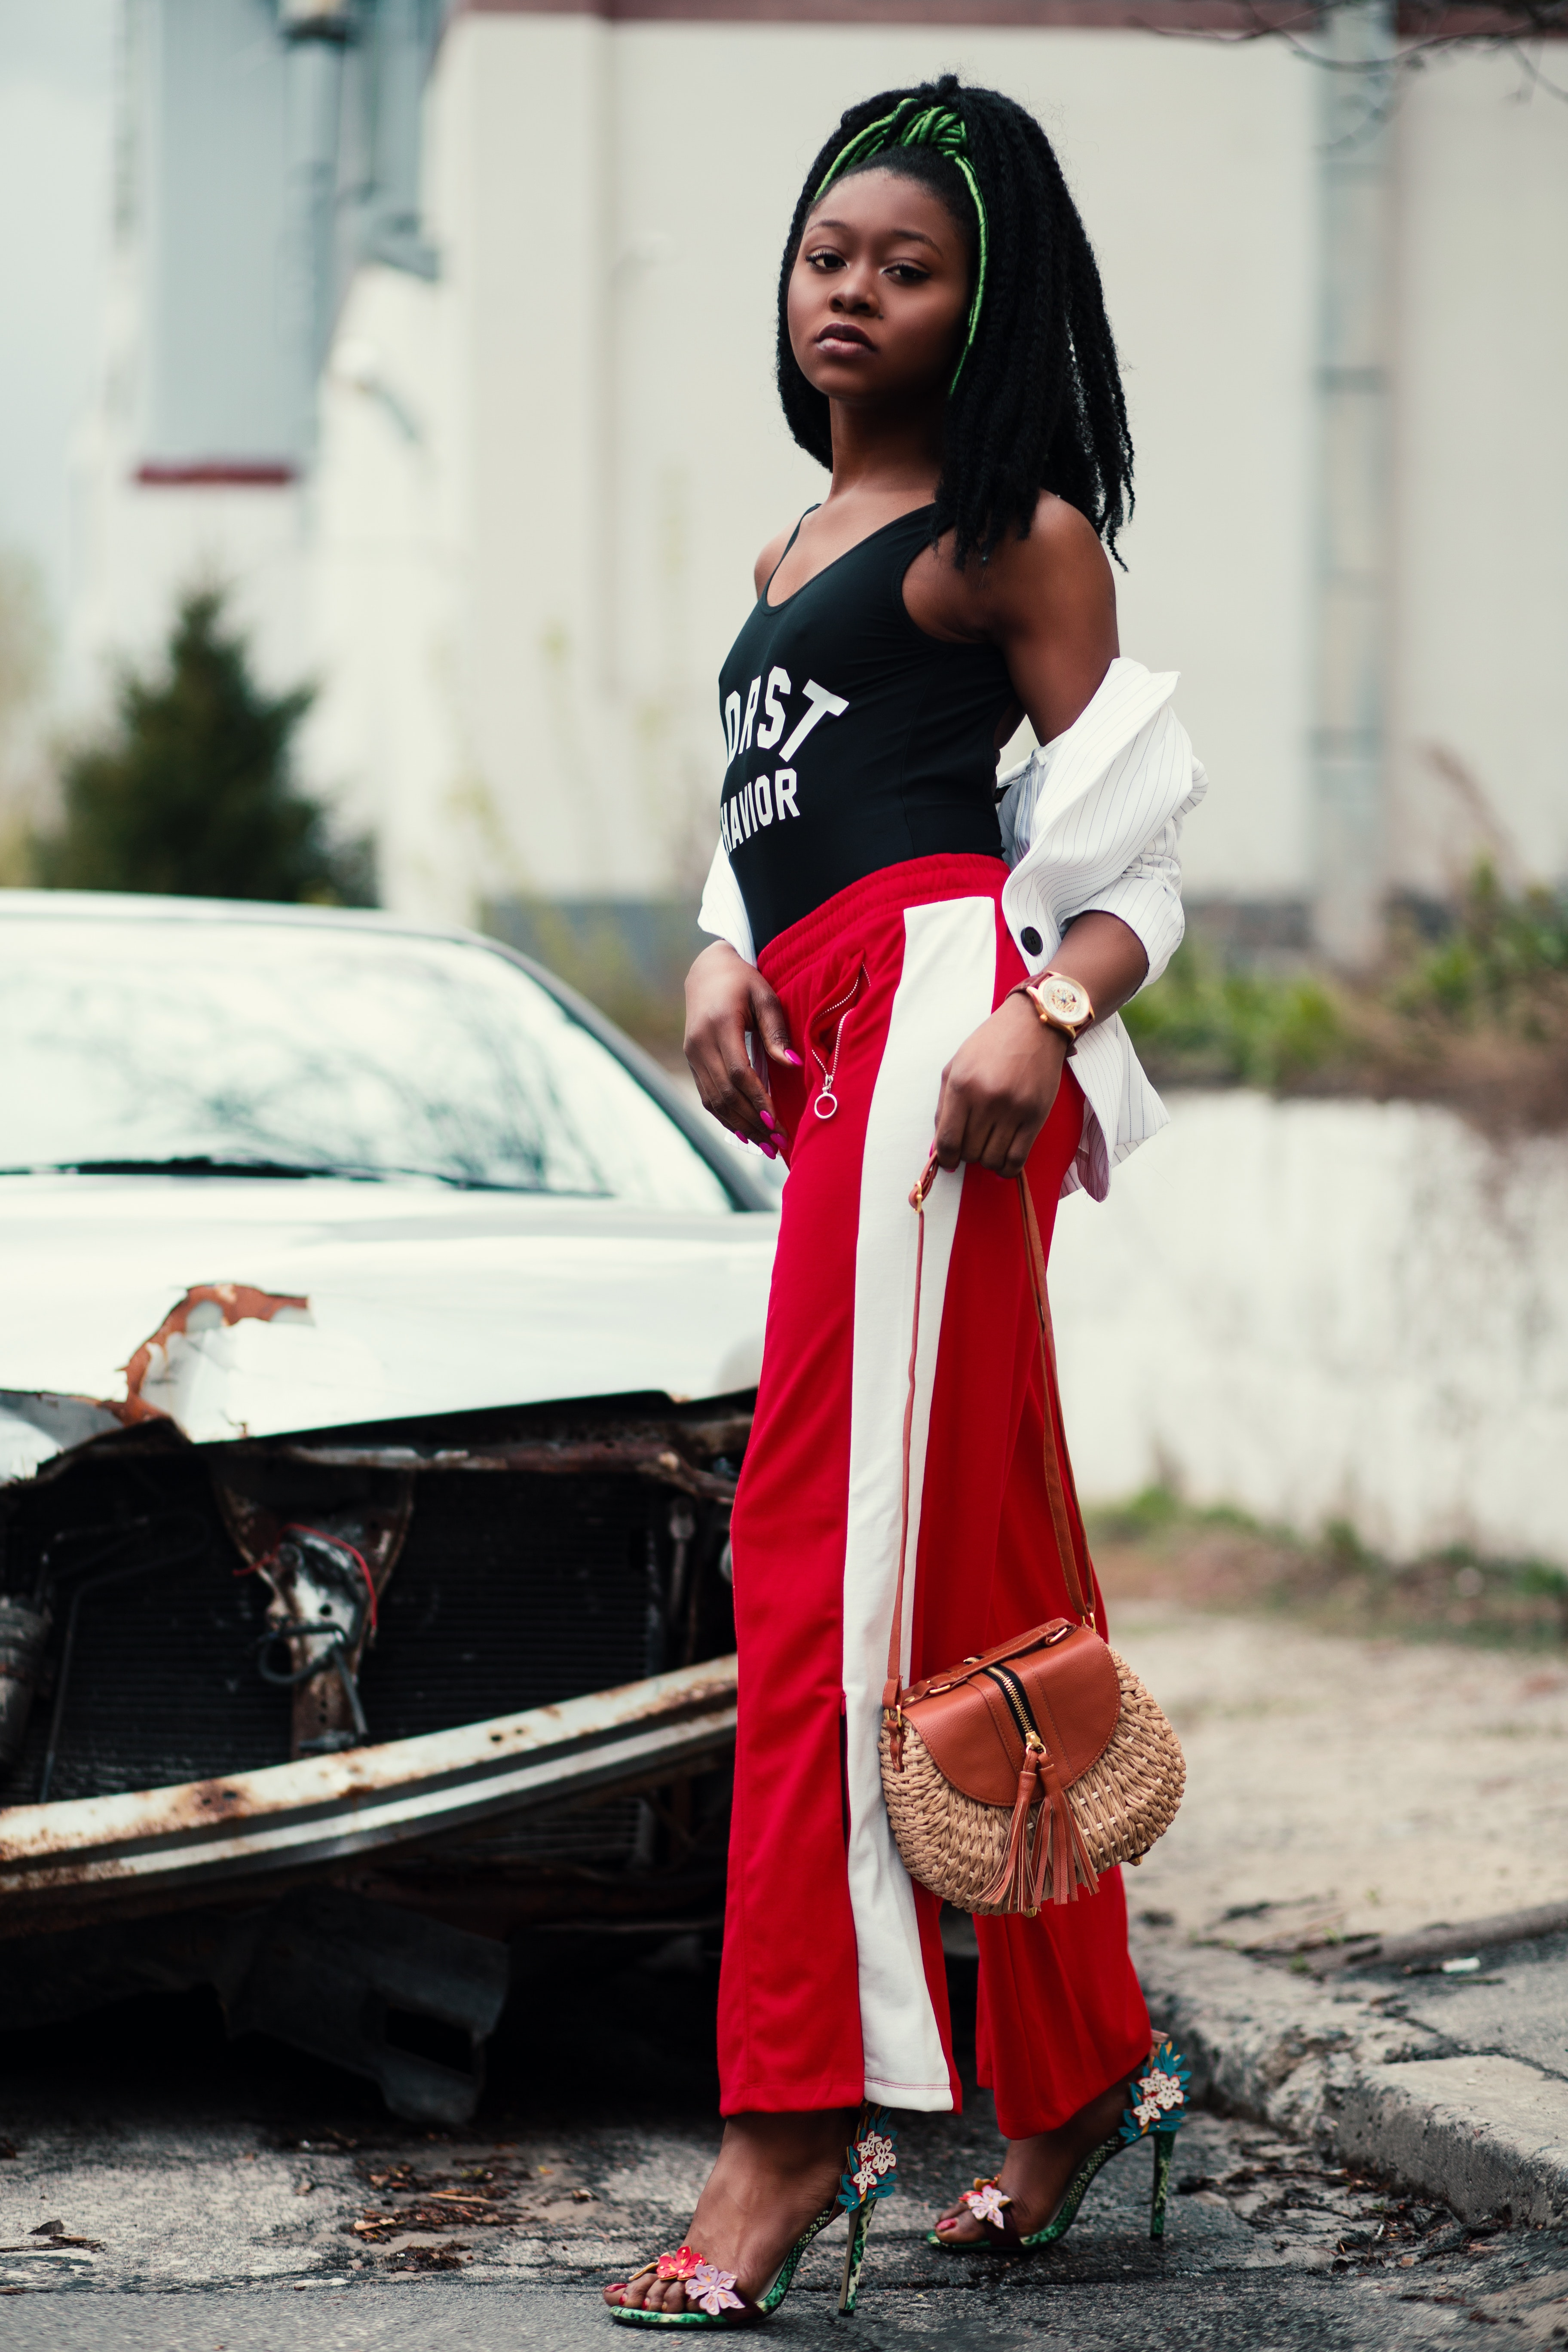 Women's black tank top and red track pants walking on street photo